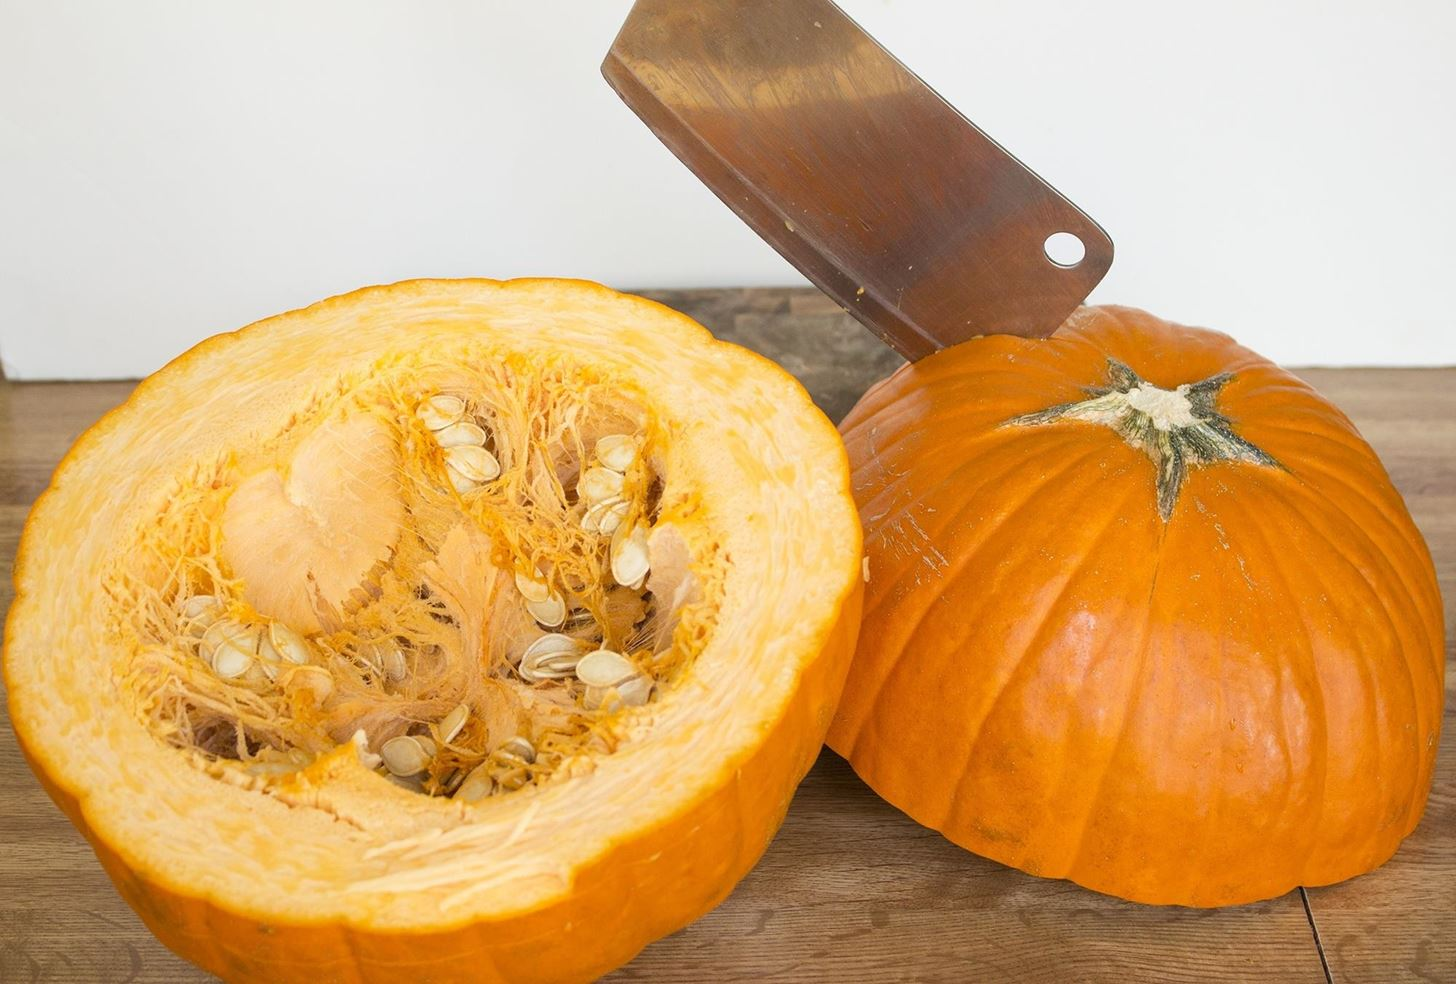 Halloween Food Hacks: How to Make a Bubbling, Brewing Pumpkin Cooler